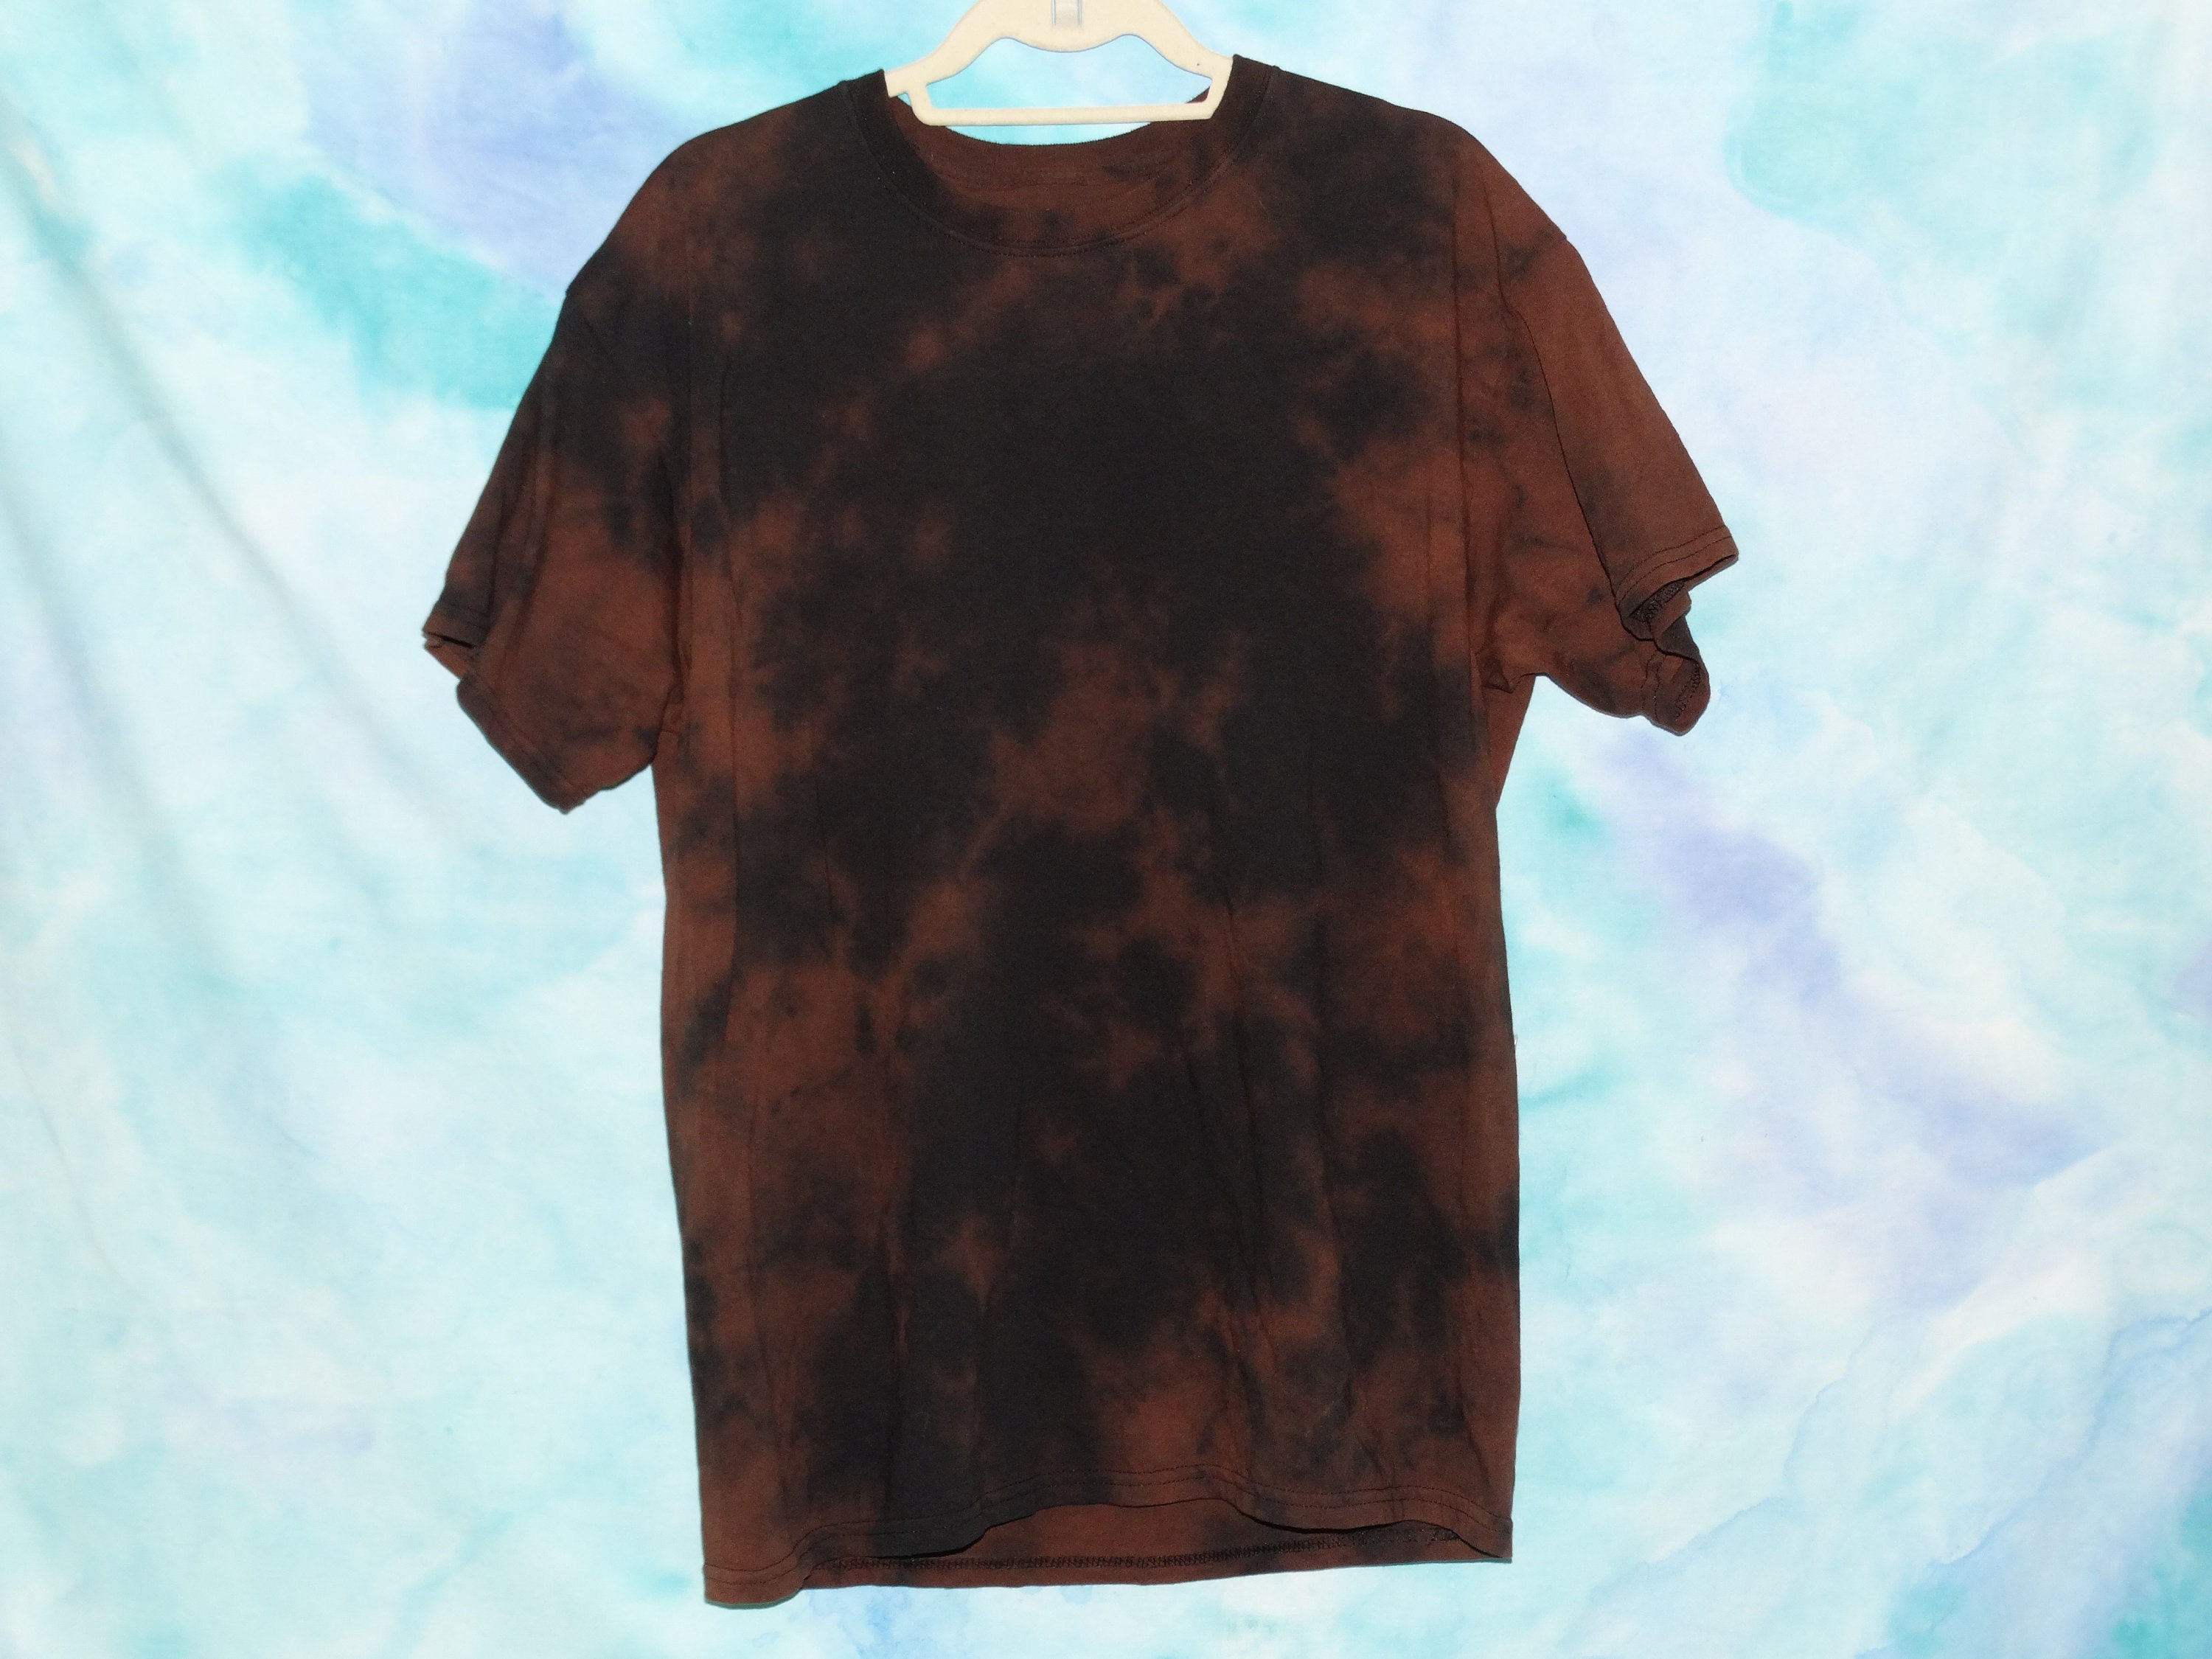 How to tie dye shirts with bleach